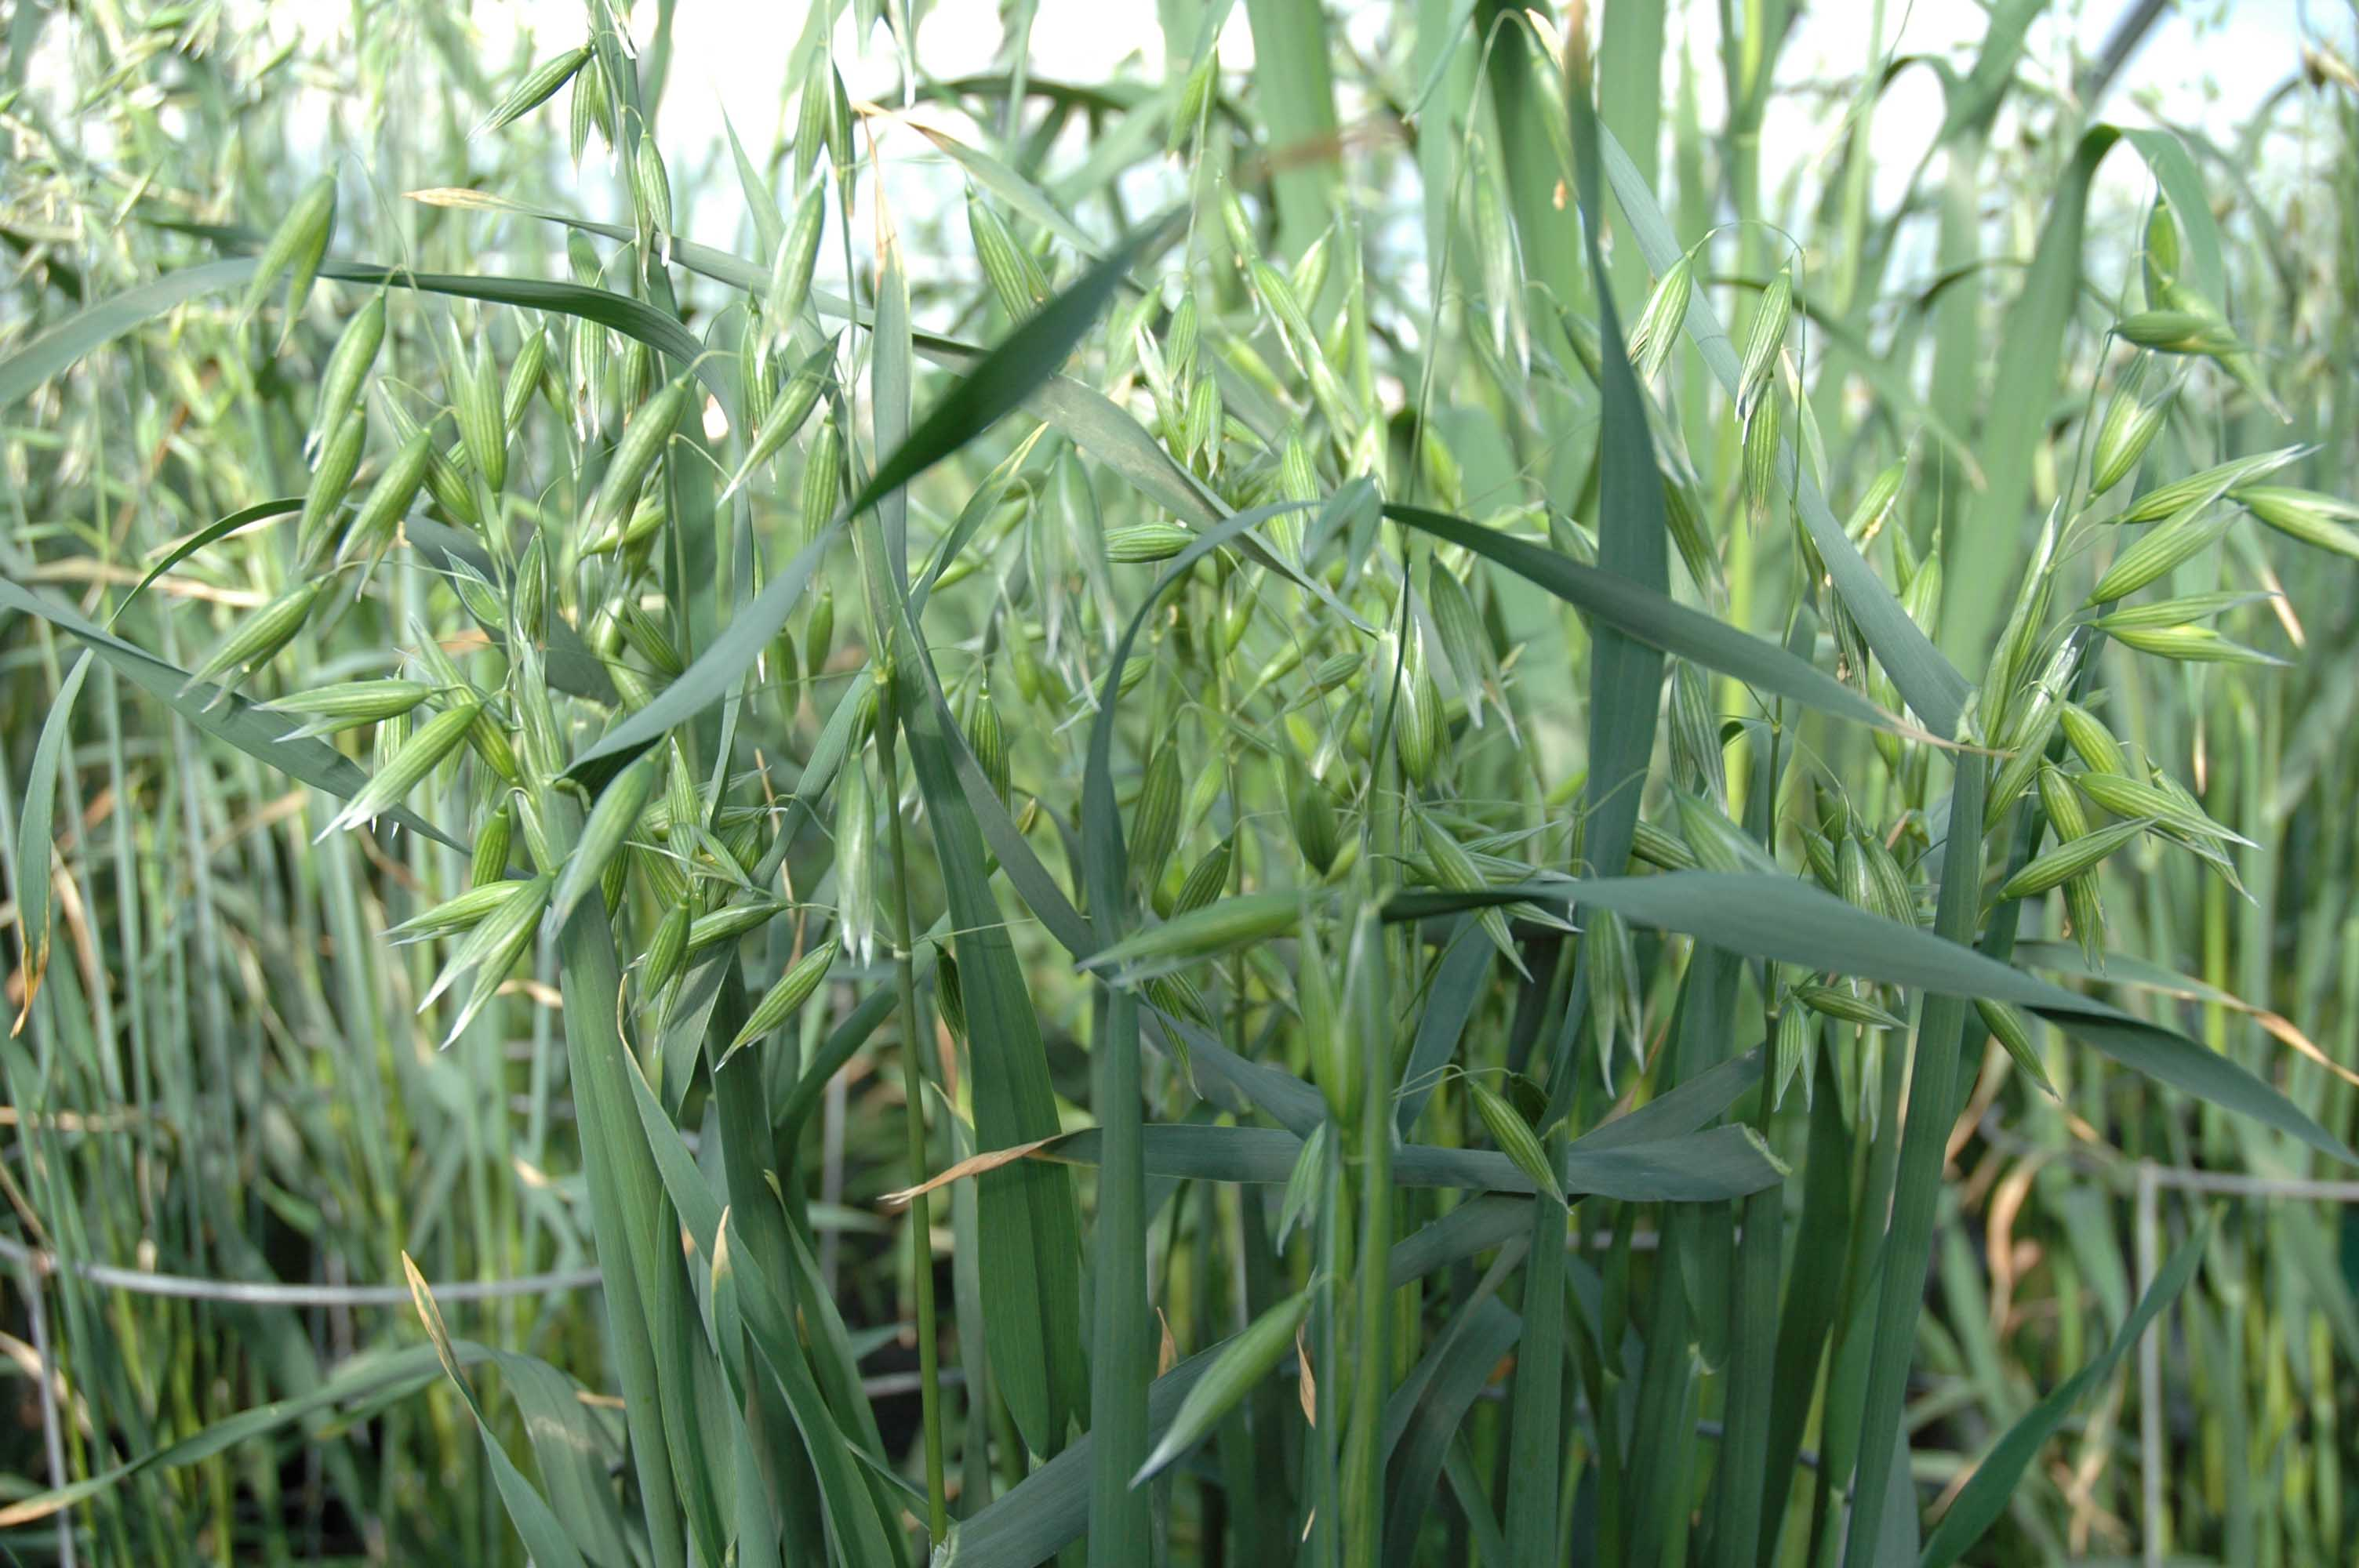 close up of green crop